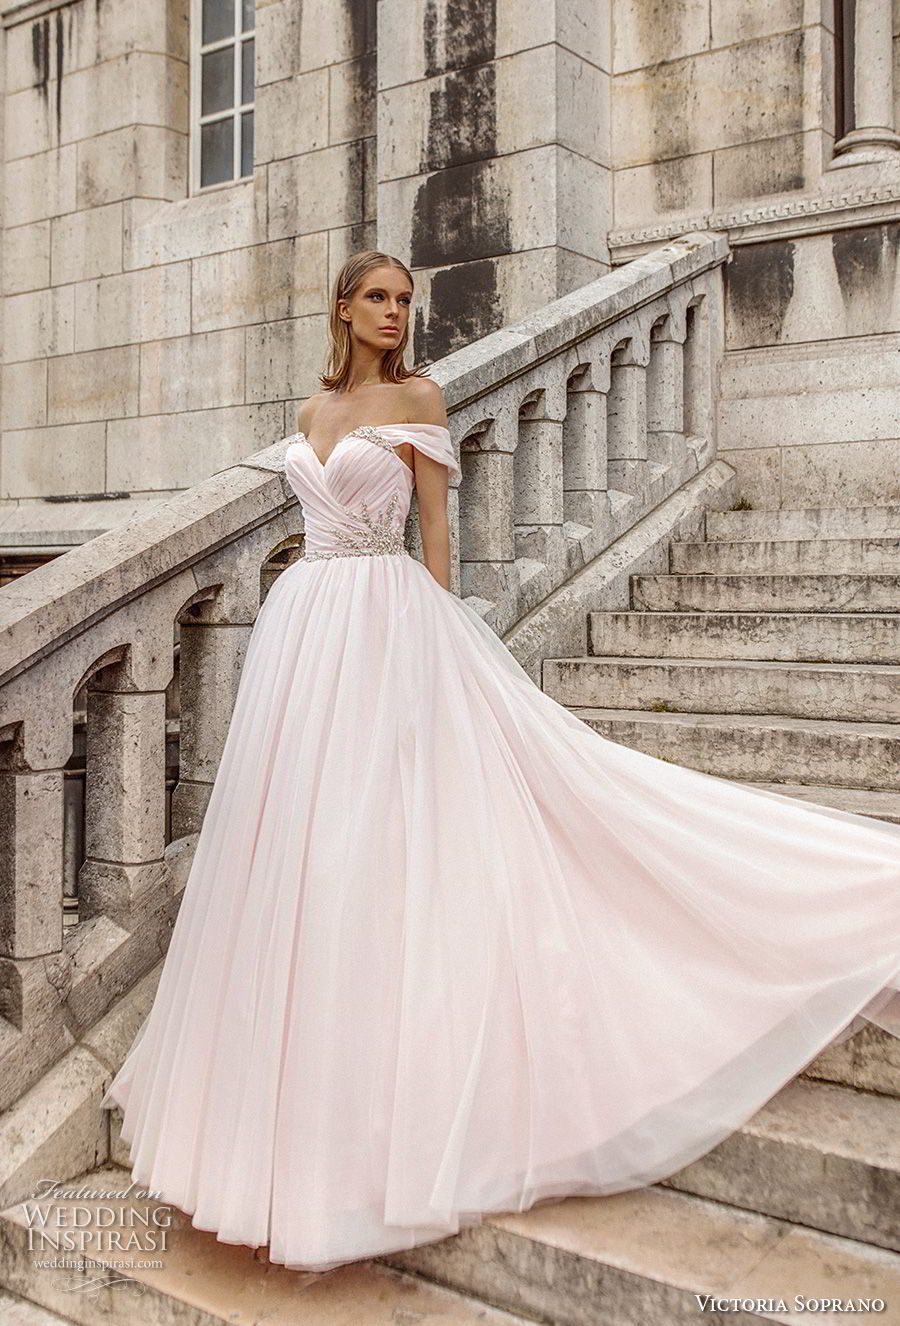 victoria soprano 2019 bridal off the shoulder sweetheart neckline ruched wrap over bodice romantic blush ball gown wedding dress chapel train (5) mv